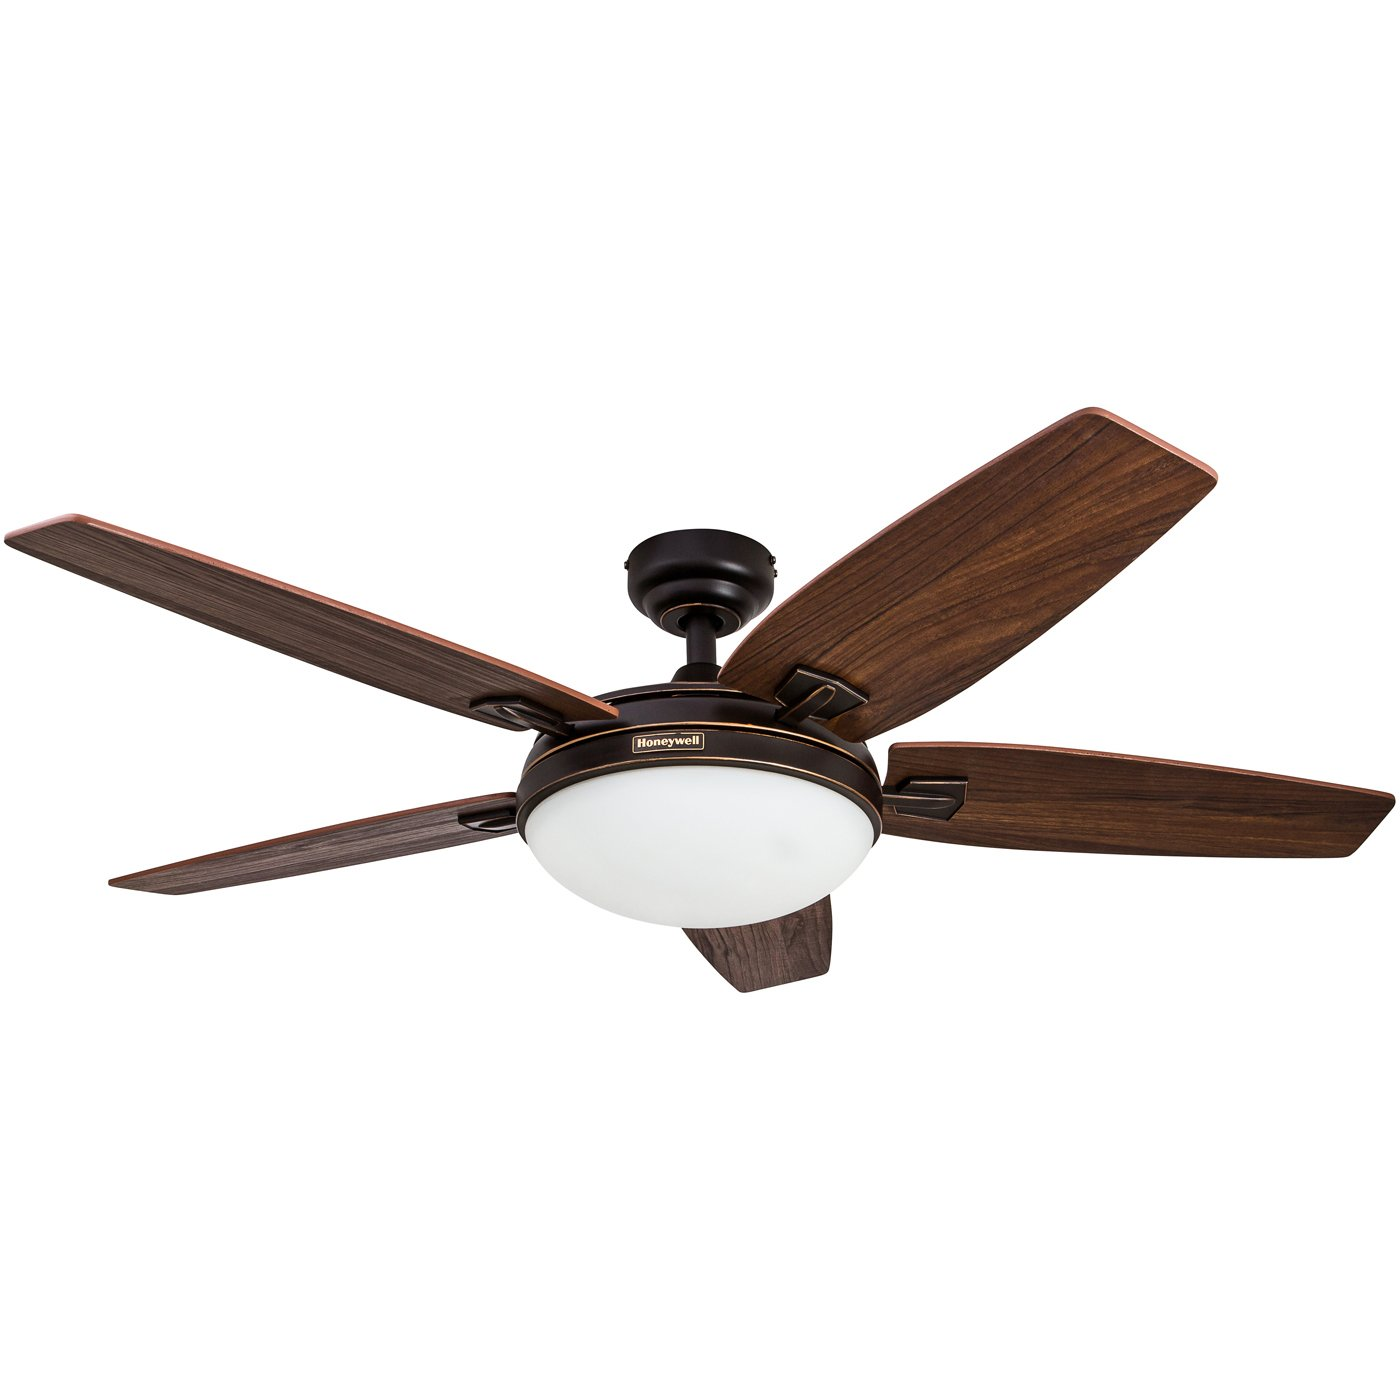 Top 5 Best Ceiling Fans With Remote In 2019 Review